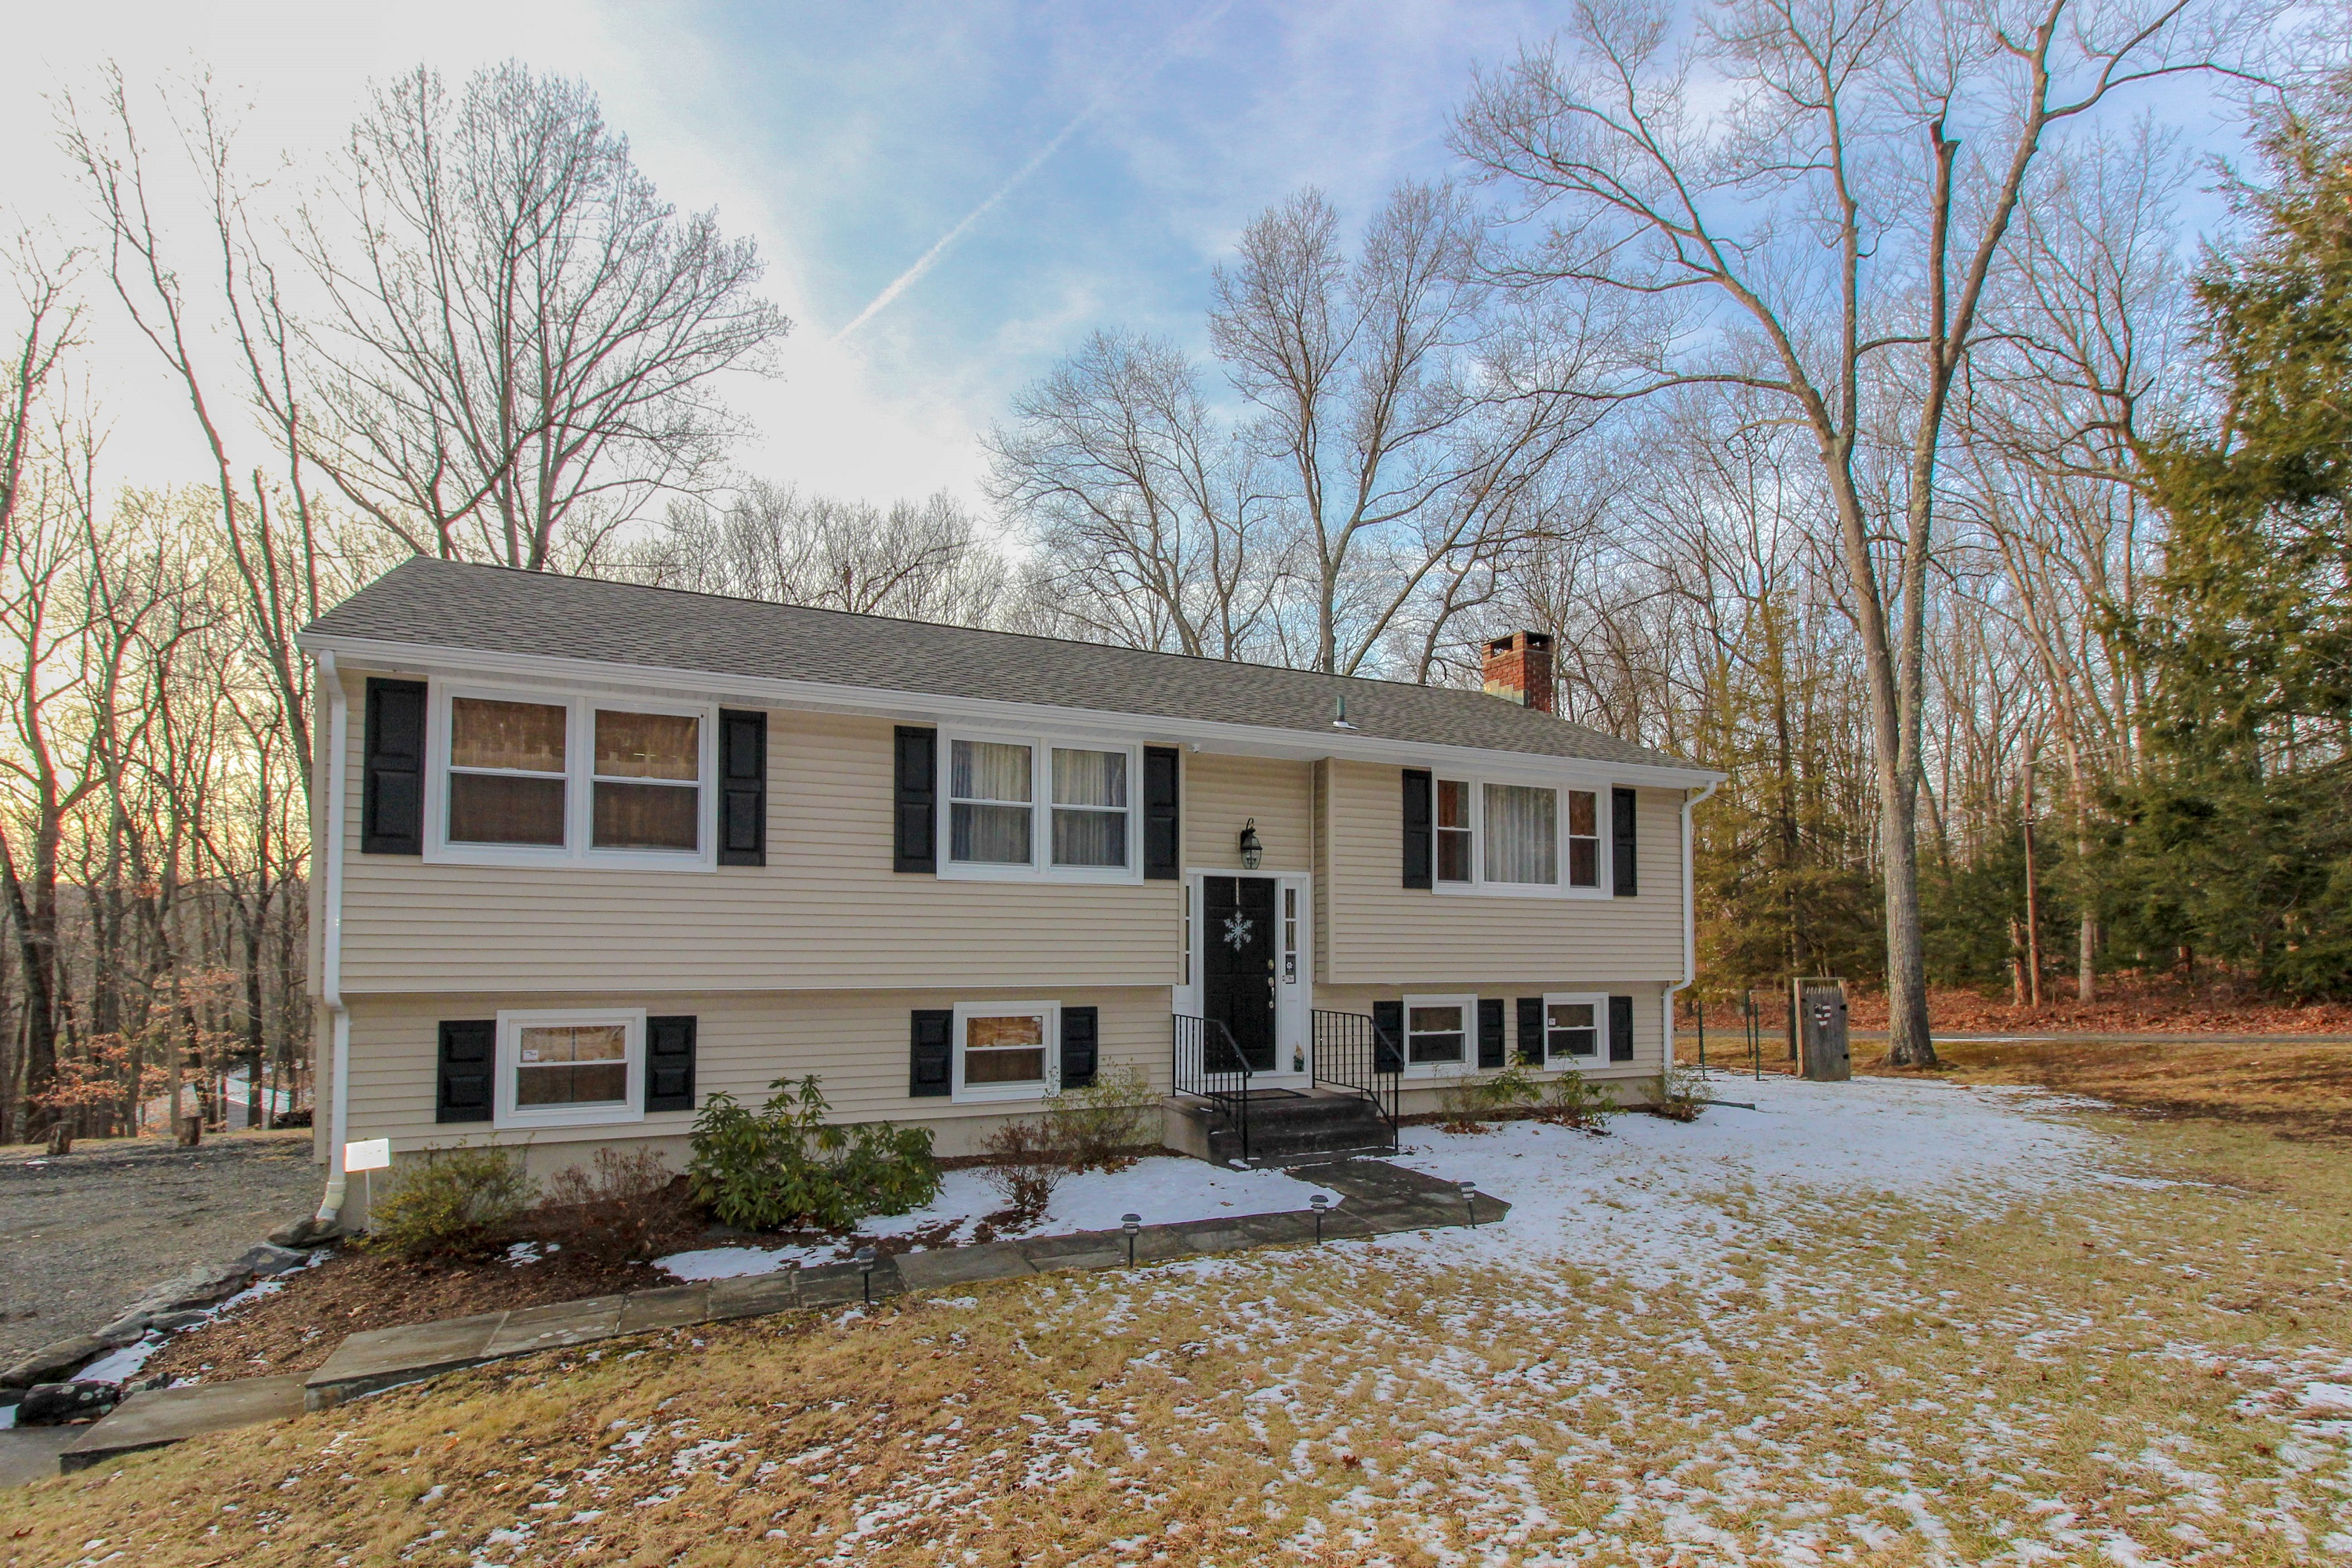 Single Family Home for Sale at Beautifully Updated 13 New Light Drive Danbury, Connecticut, 06810 United States